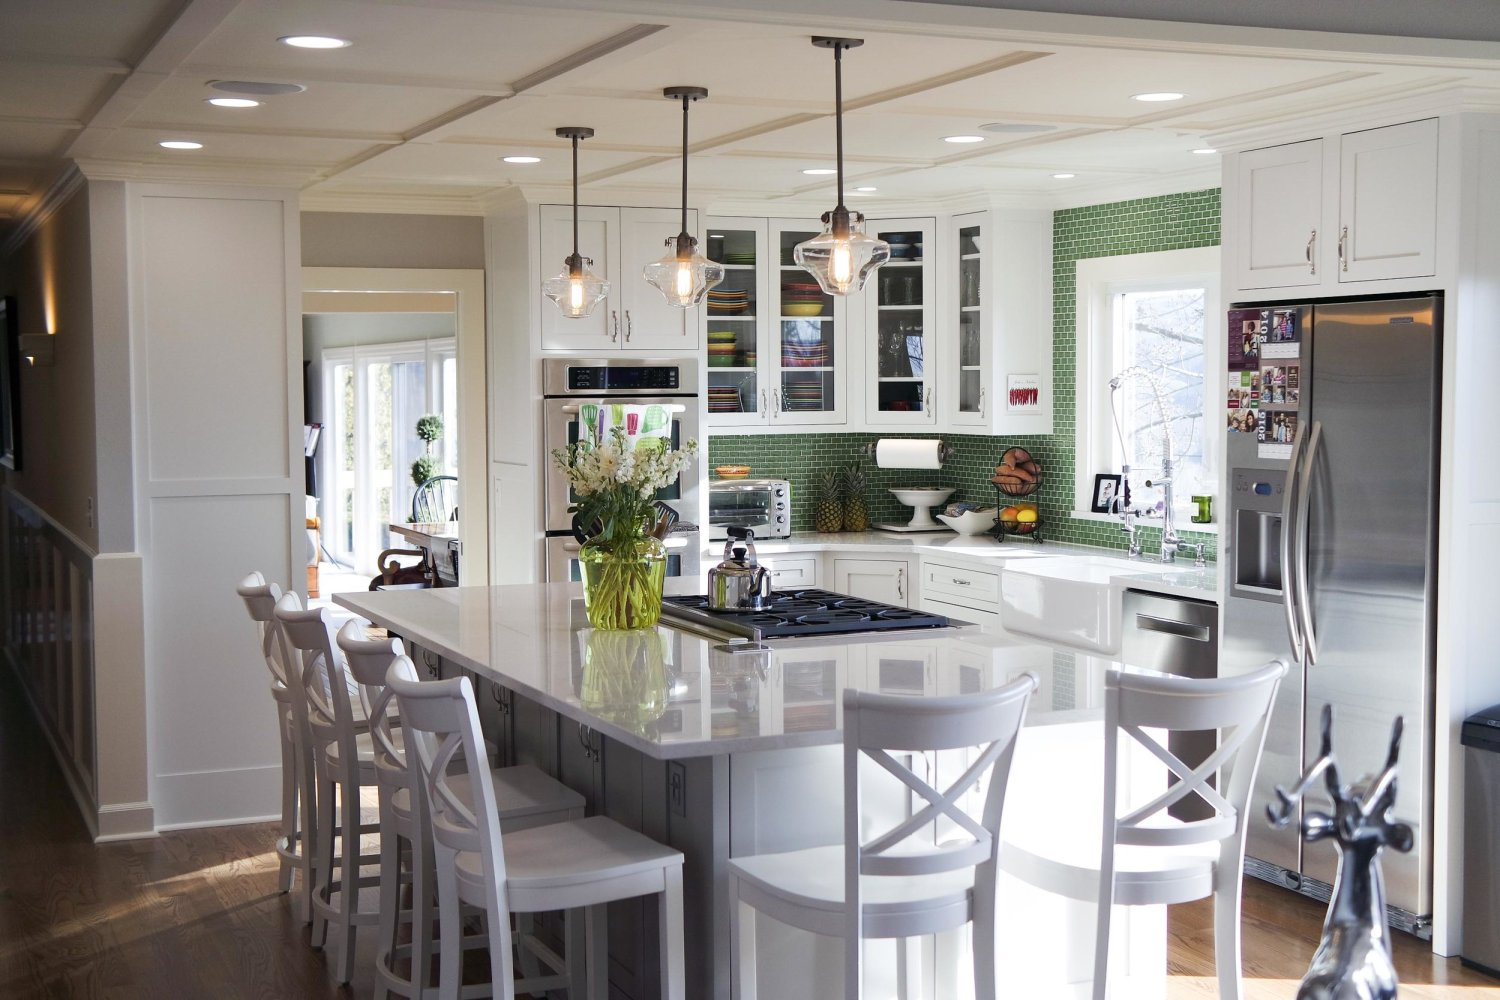 yakima kitchen remodels. award winning kitchen remodels. — baxter